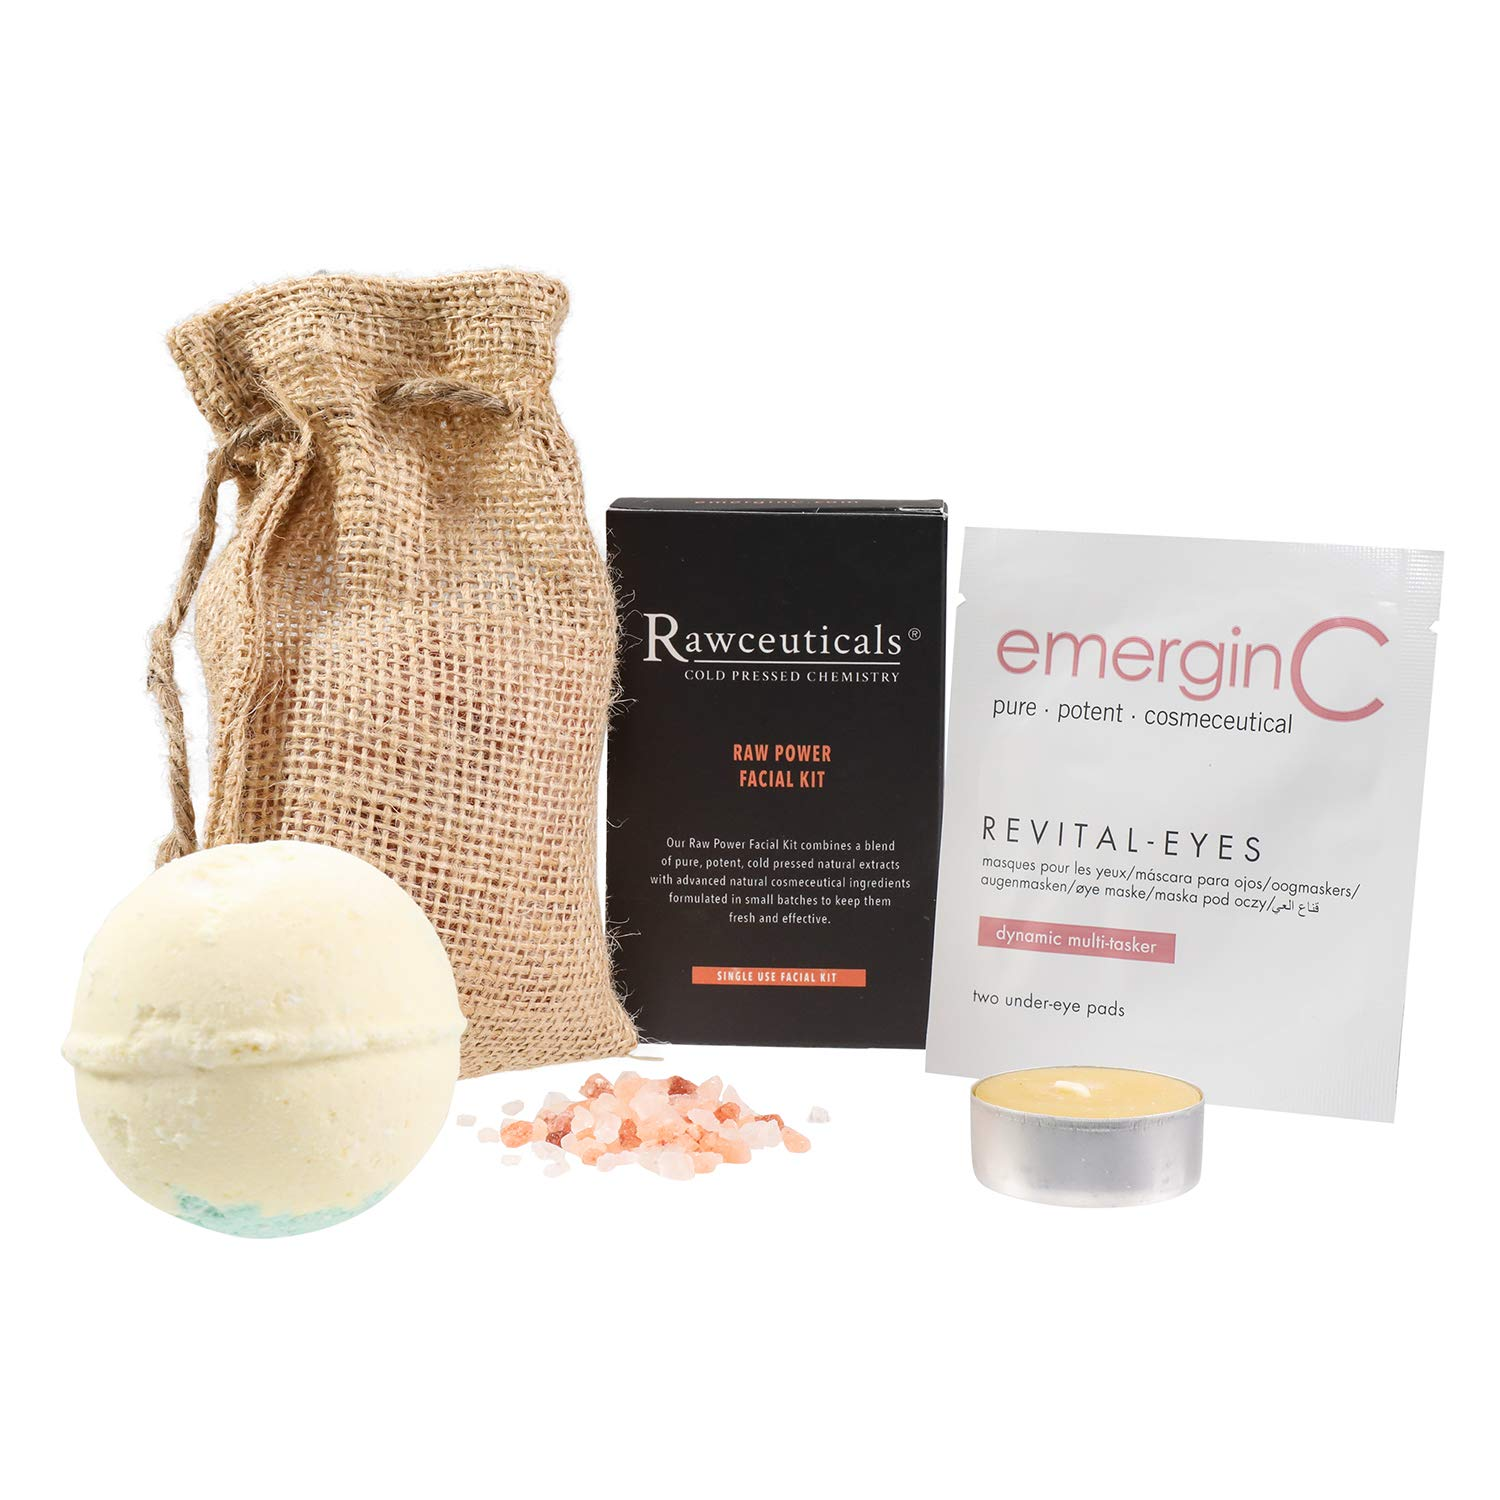 emerginC Scientific At-Home Luxury Spa Kit - Rawceuticals - 5-Piece Set - Raw Power Facial Kit, Revital-Eyes Mask Sample, Essential Oil Bath Bomb, Himalayan Bath Salt Pack, Beeswax Purifying Candle